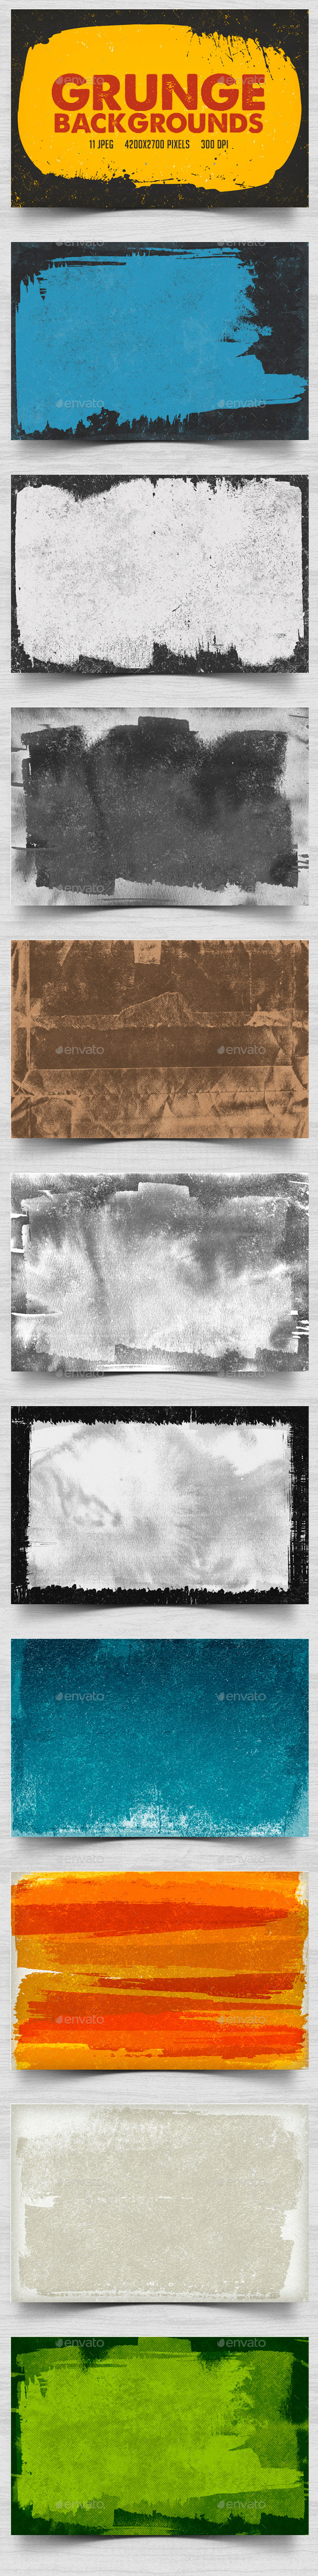 GraphicRiver Grunge Backgrounds 10299297